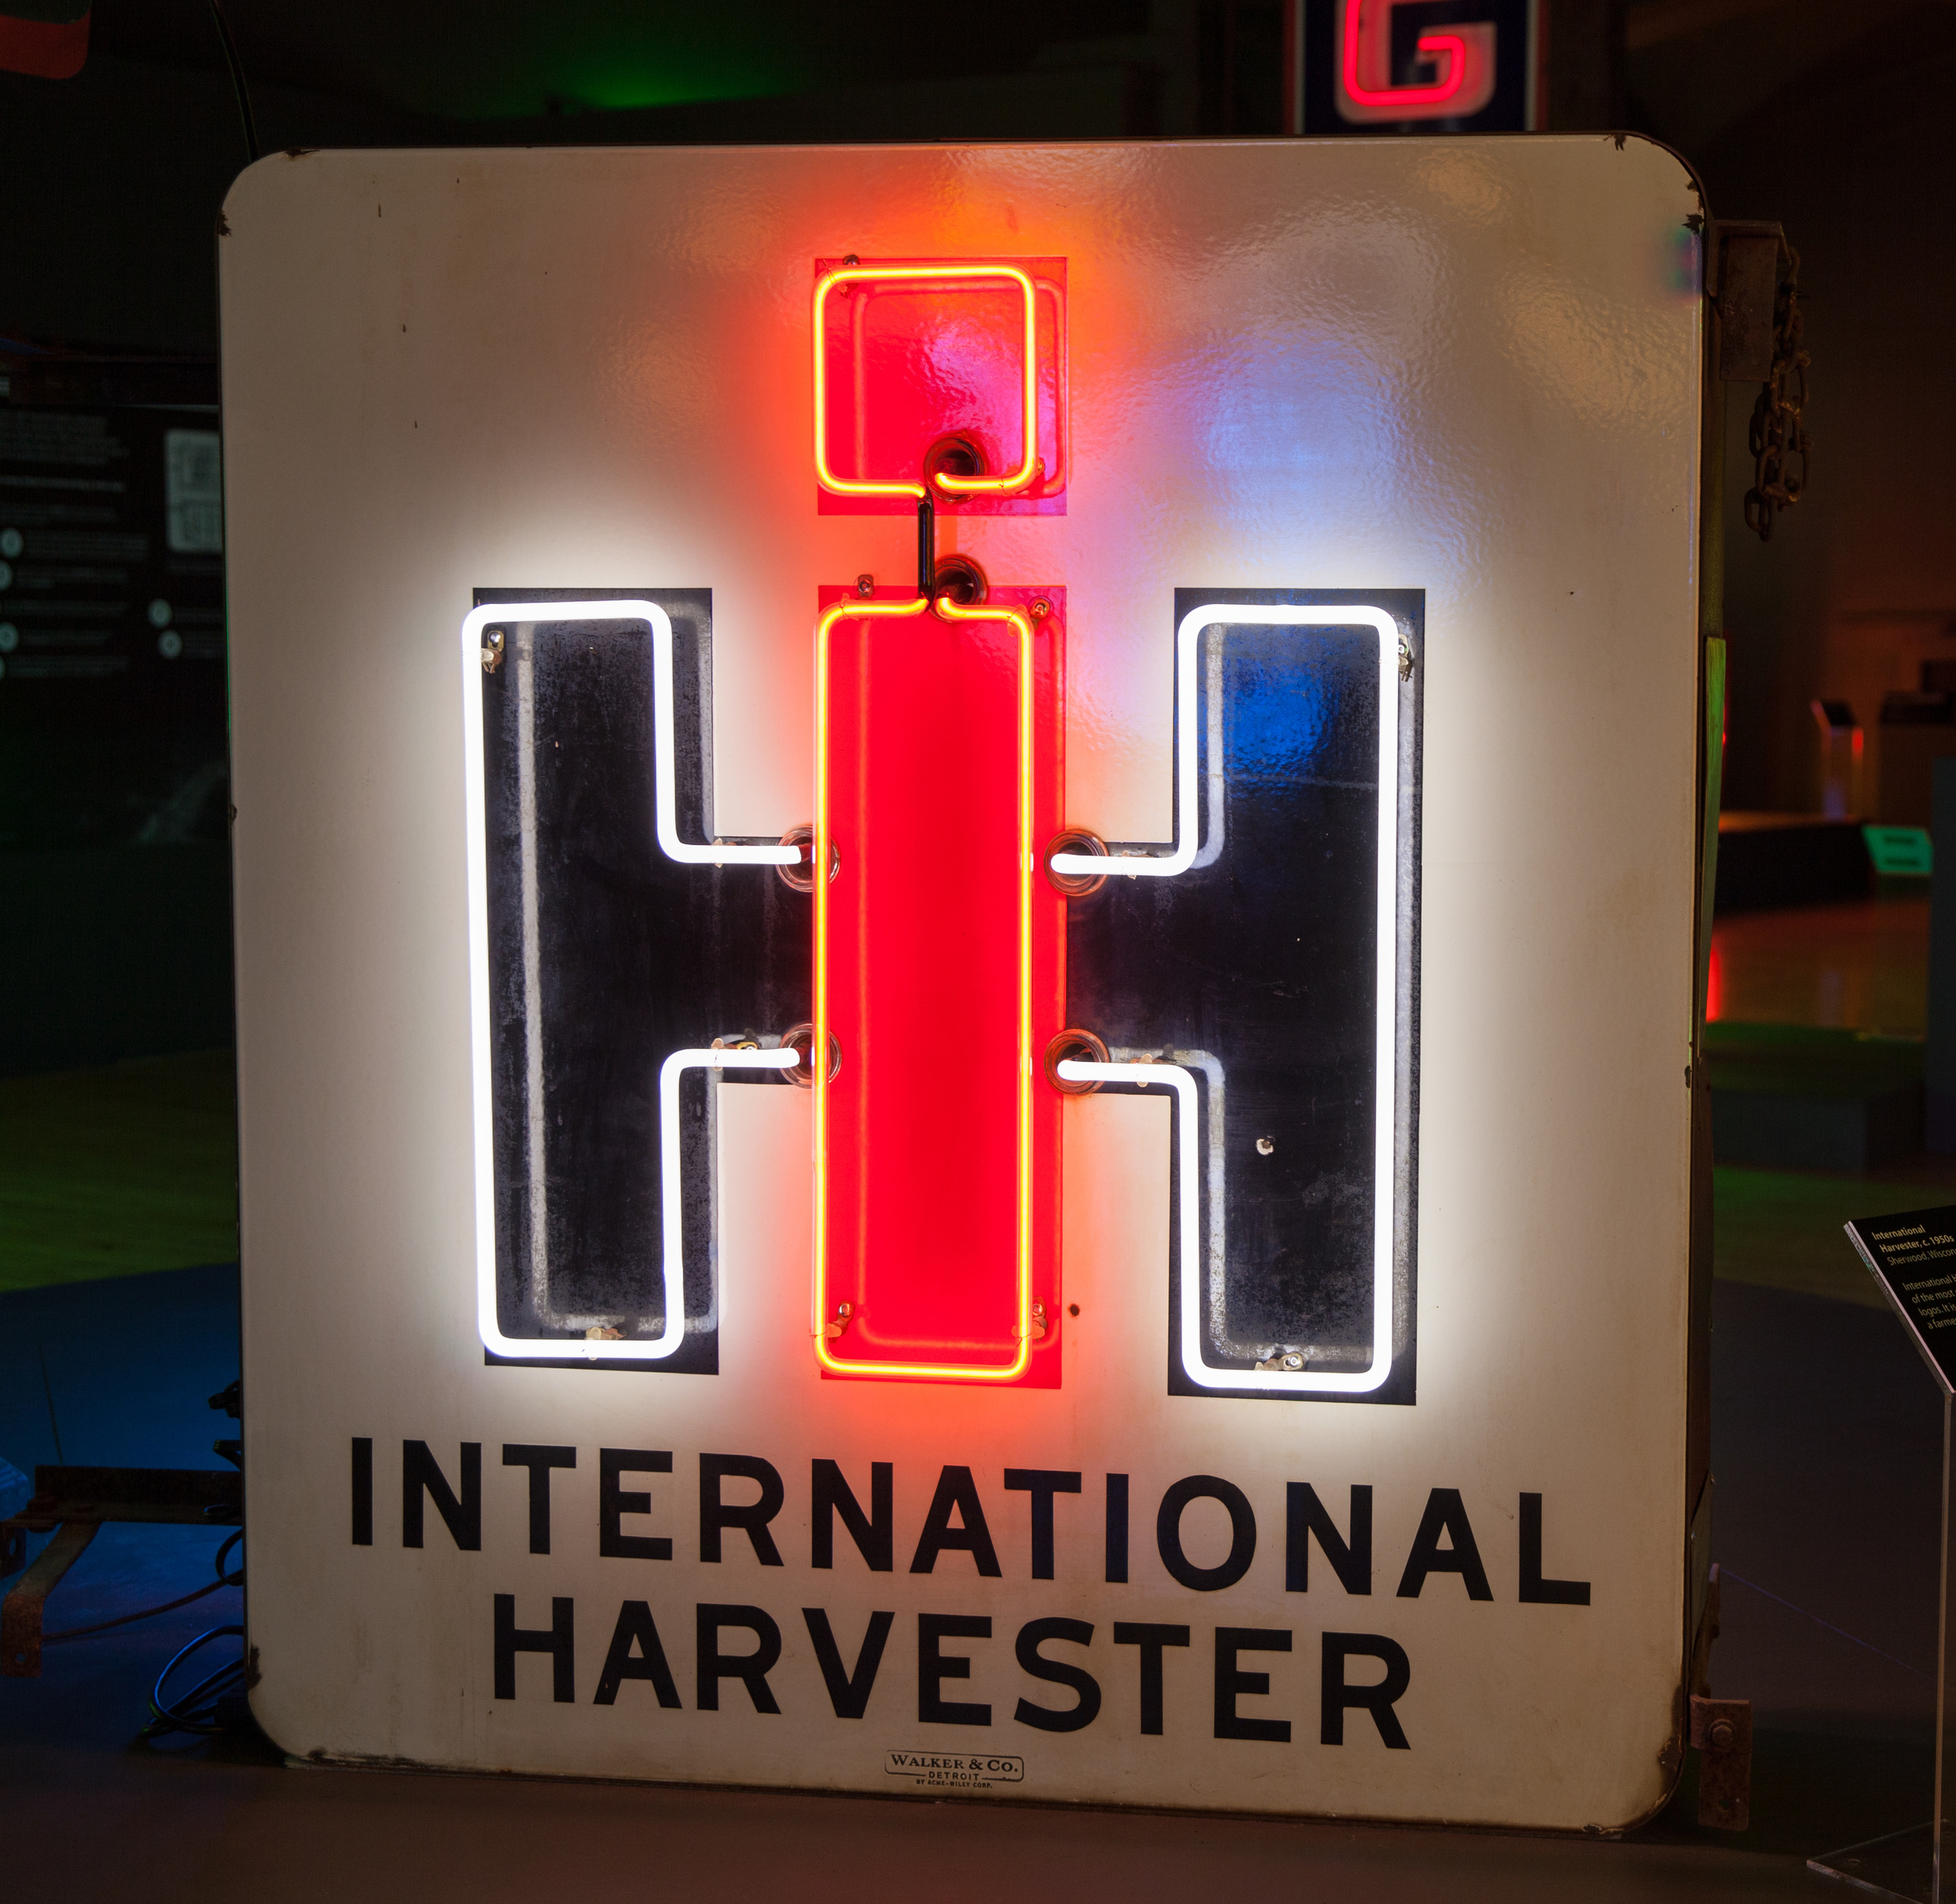 International Harvester Porcelain Enamel and Neon Sign.